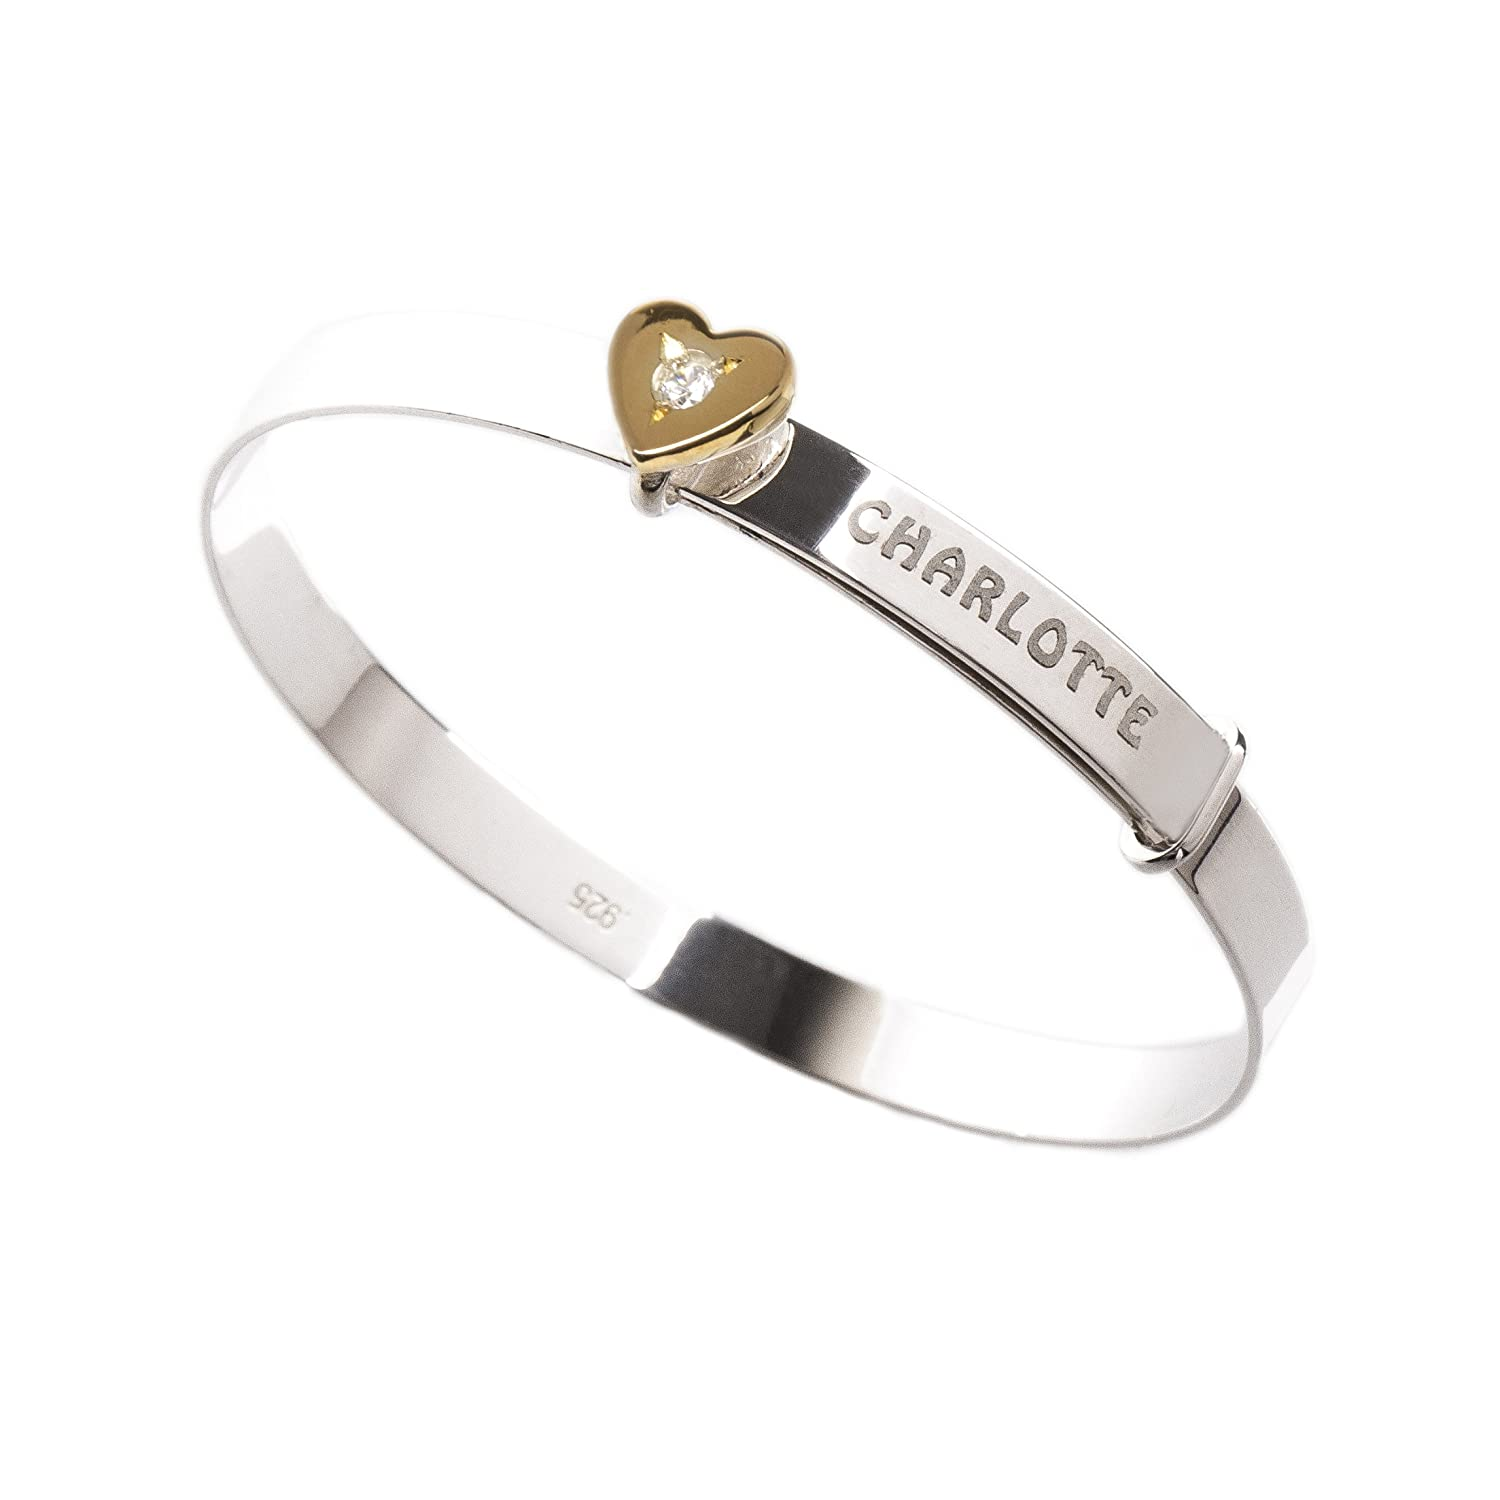 1000716528f25 Personalised Sterling Silver Expander Bracelet Bangle for Babies with  Yellow Gold Plated Heart Charm CZ